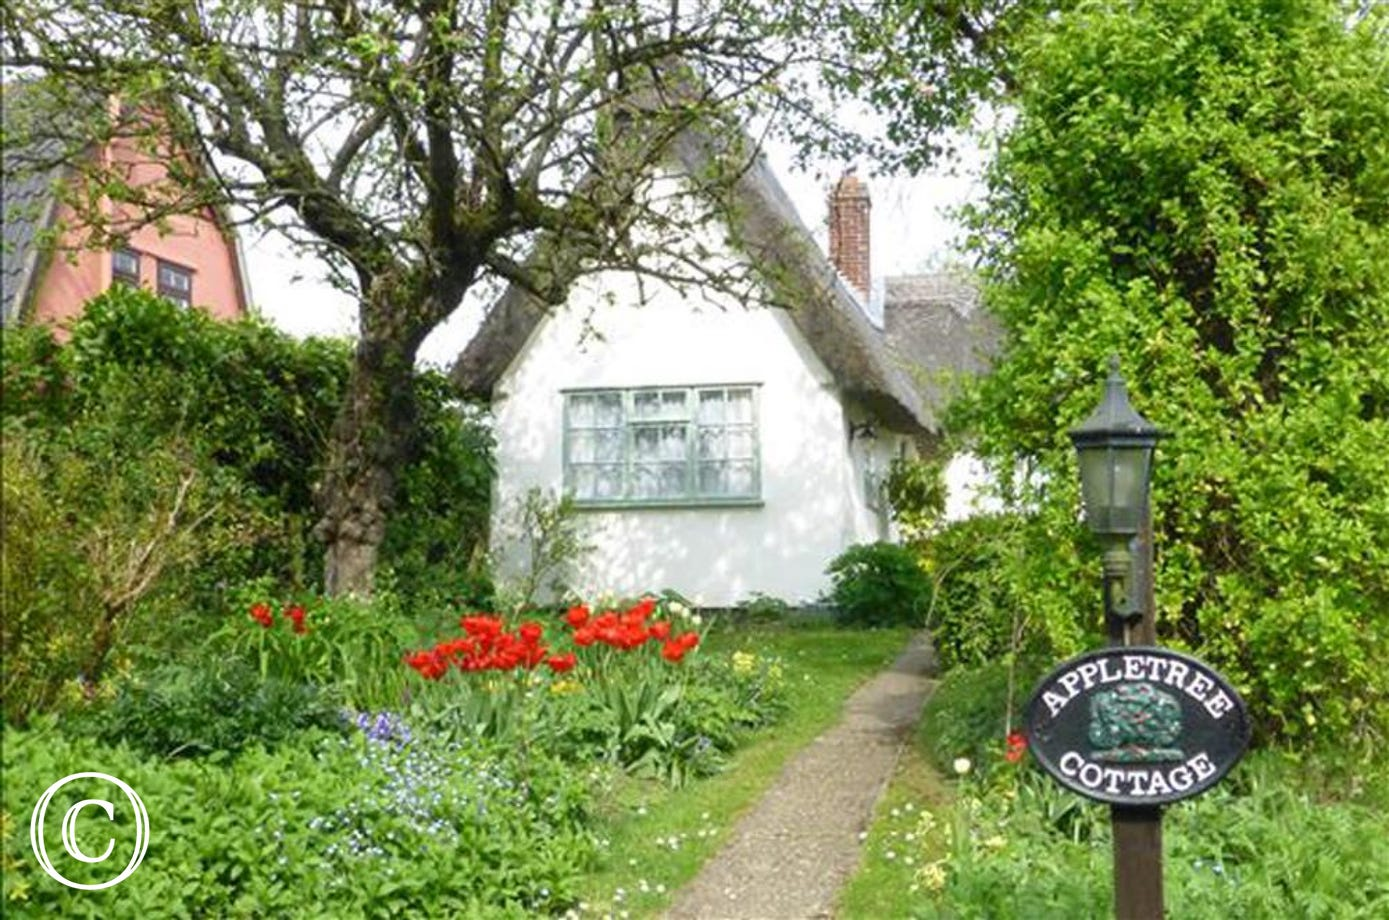 Apple Tree Cottage is a picture postcard property in the Village of Denston not far from popular Bury St Edmunds.